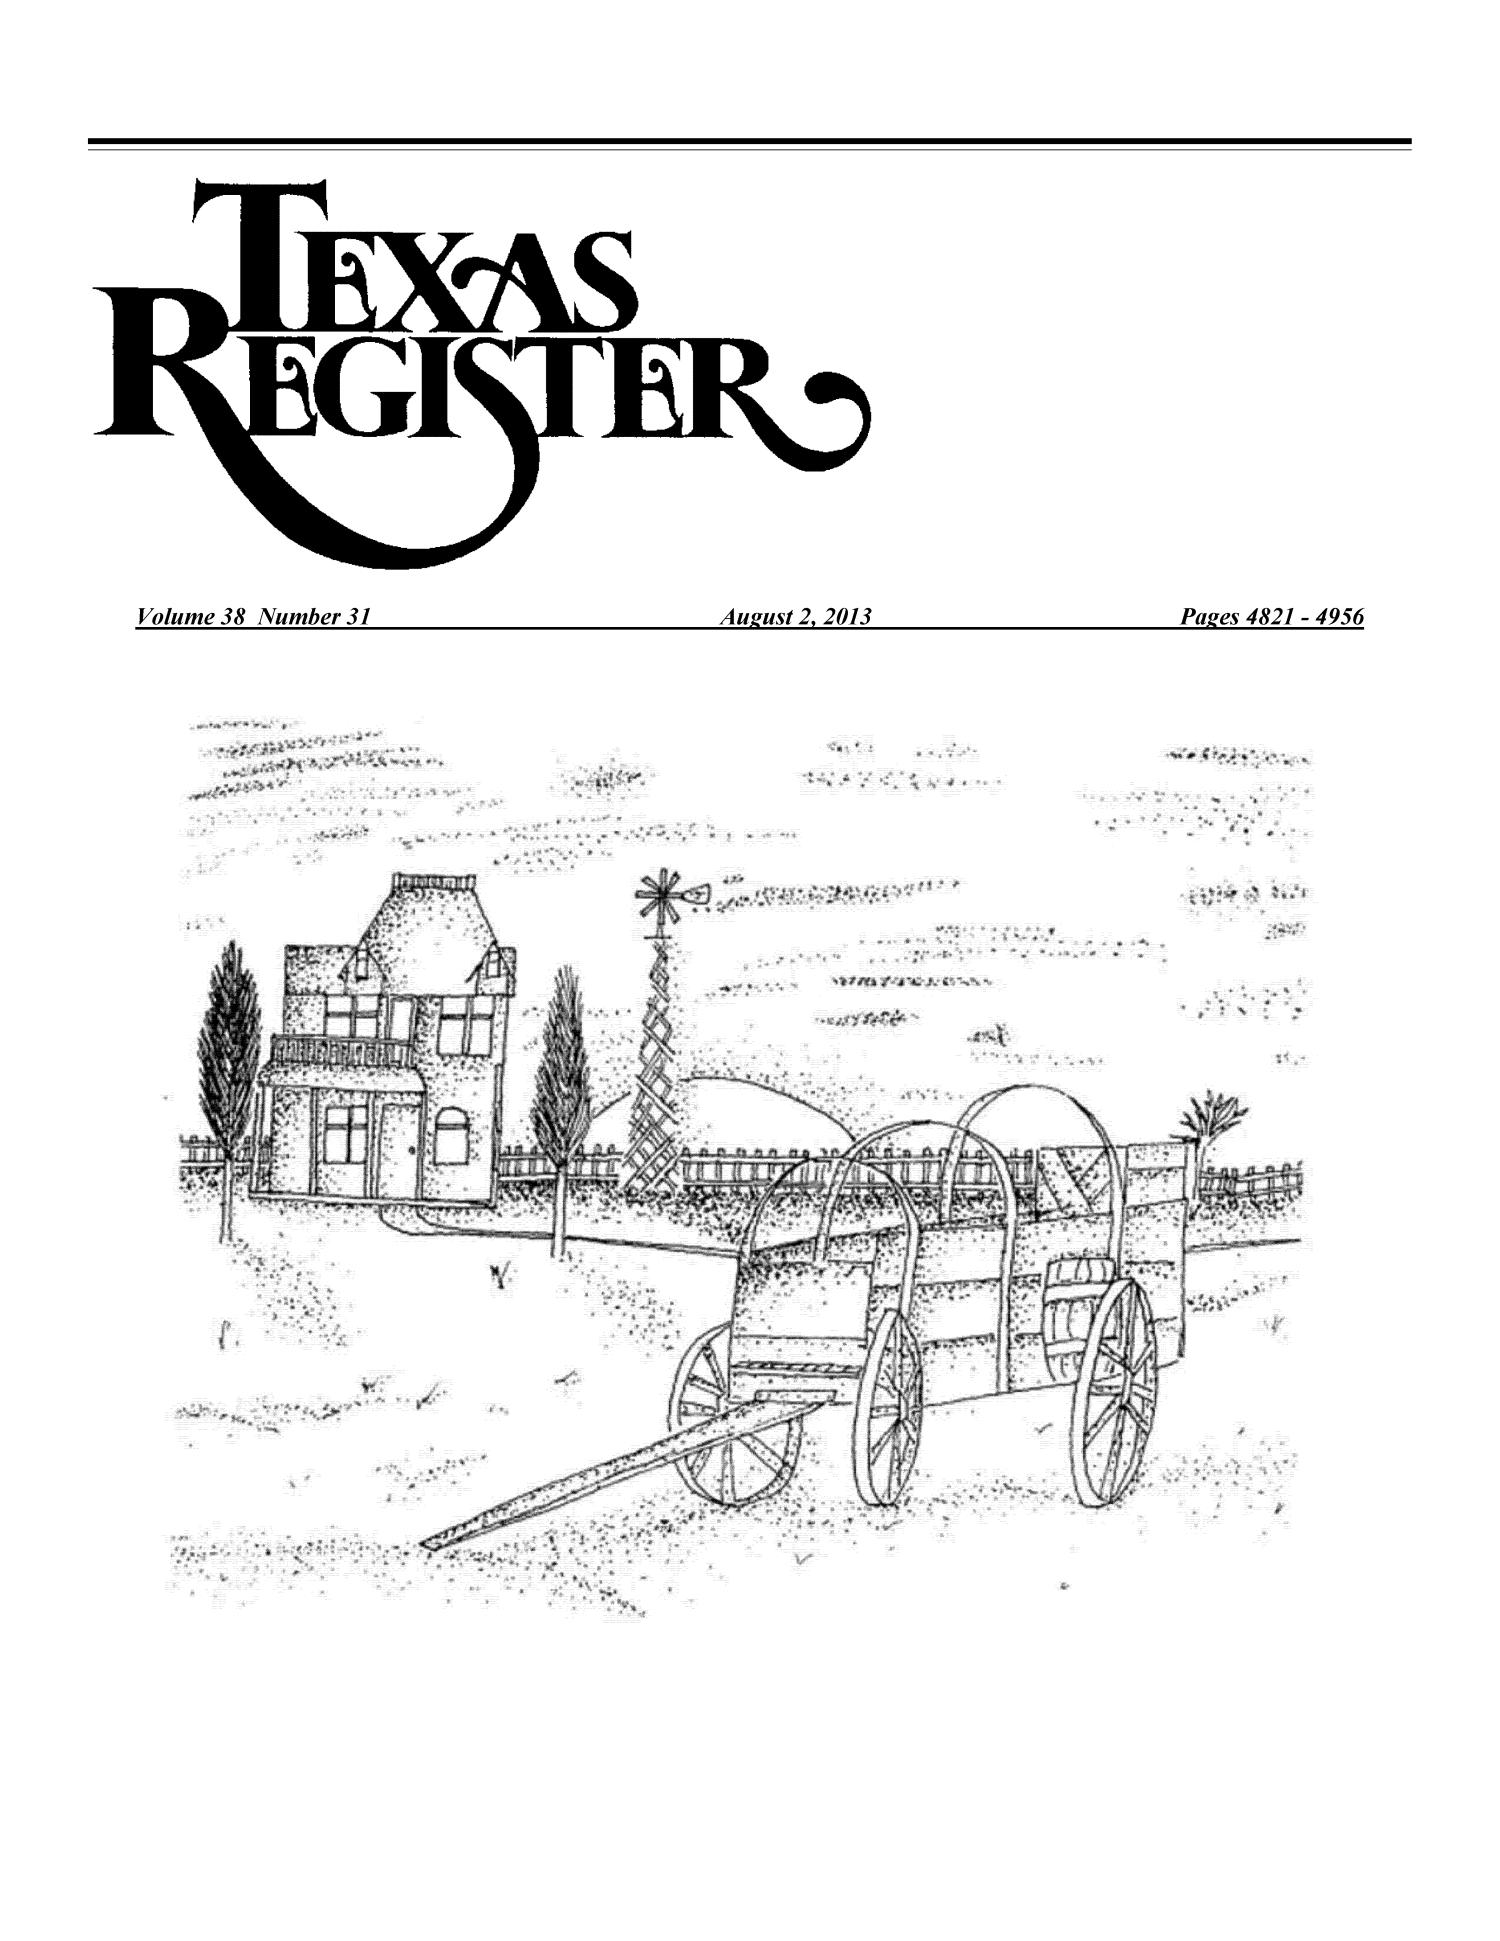 Texas Register, Volume 38, Number 31, Pages 4821-4956, August 2, 2013                                                                                                      Title Page